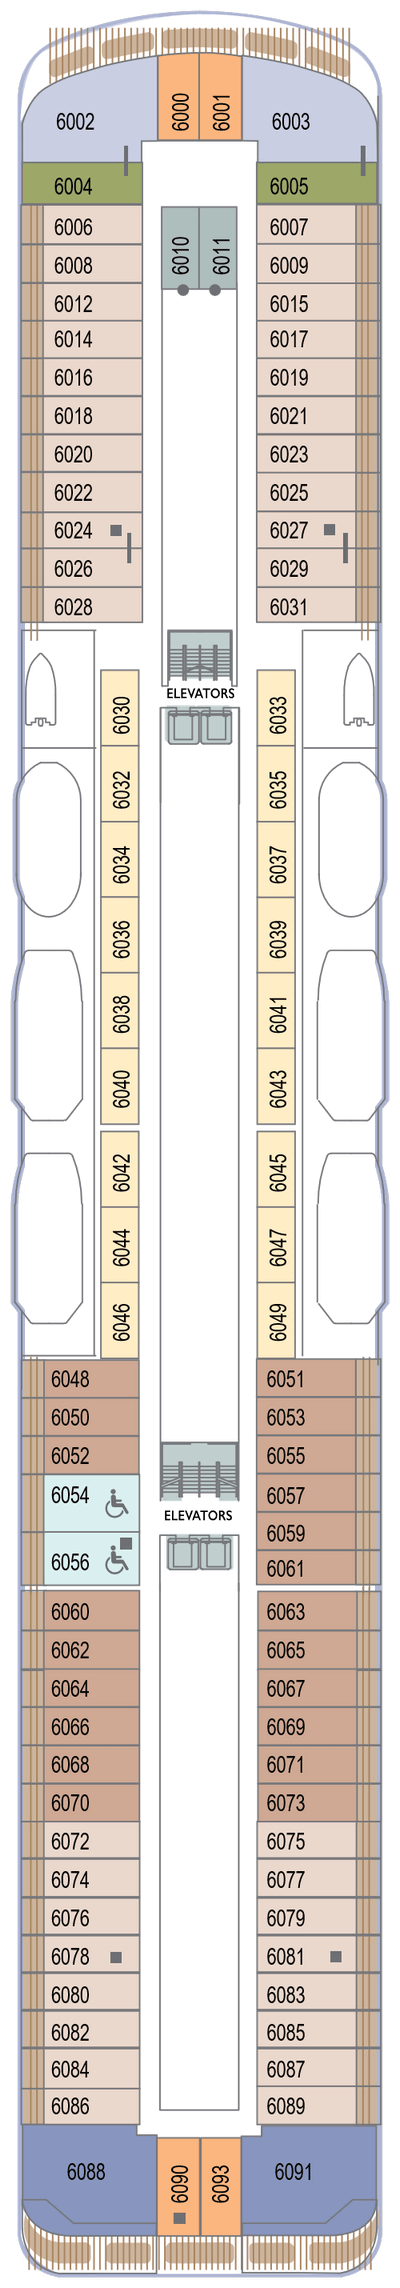 Azamara Quest Deck 6 layout